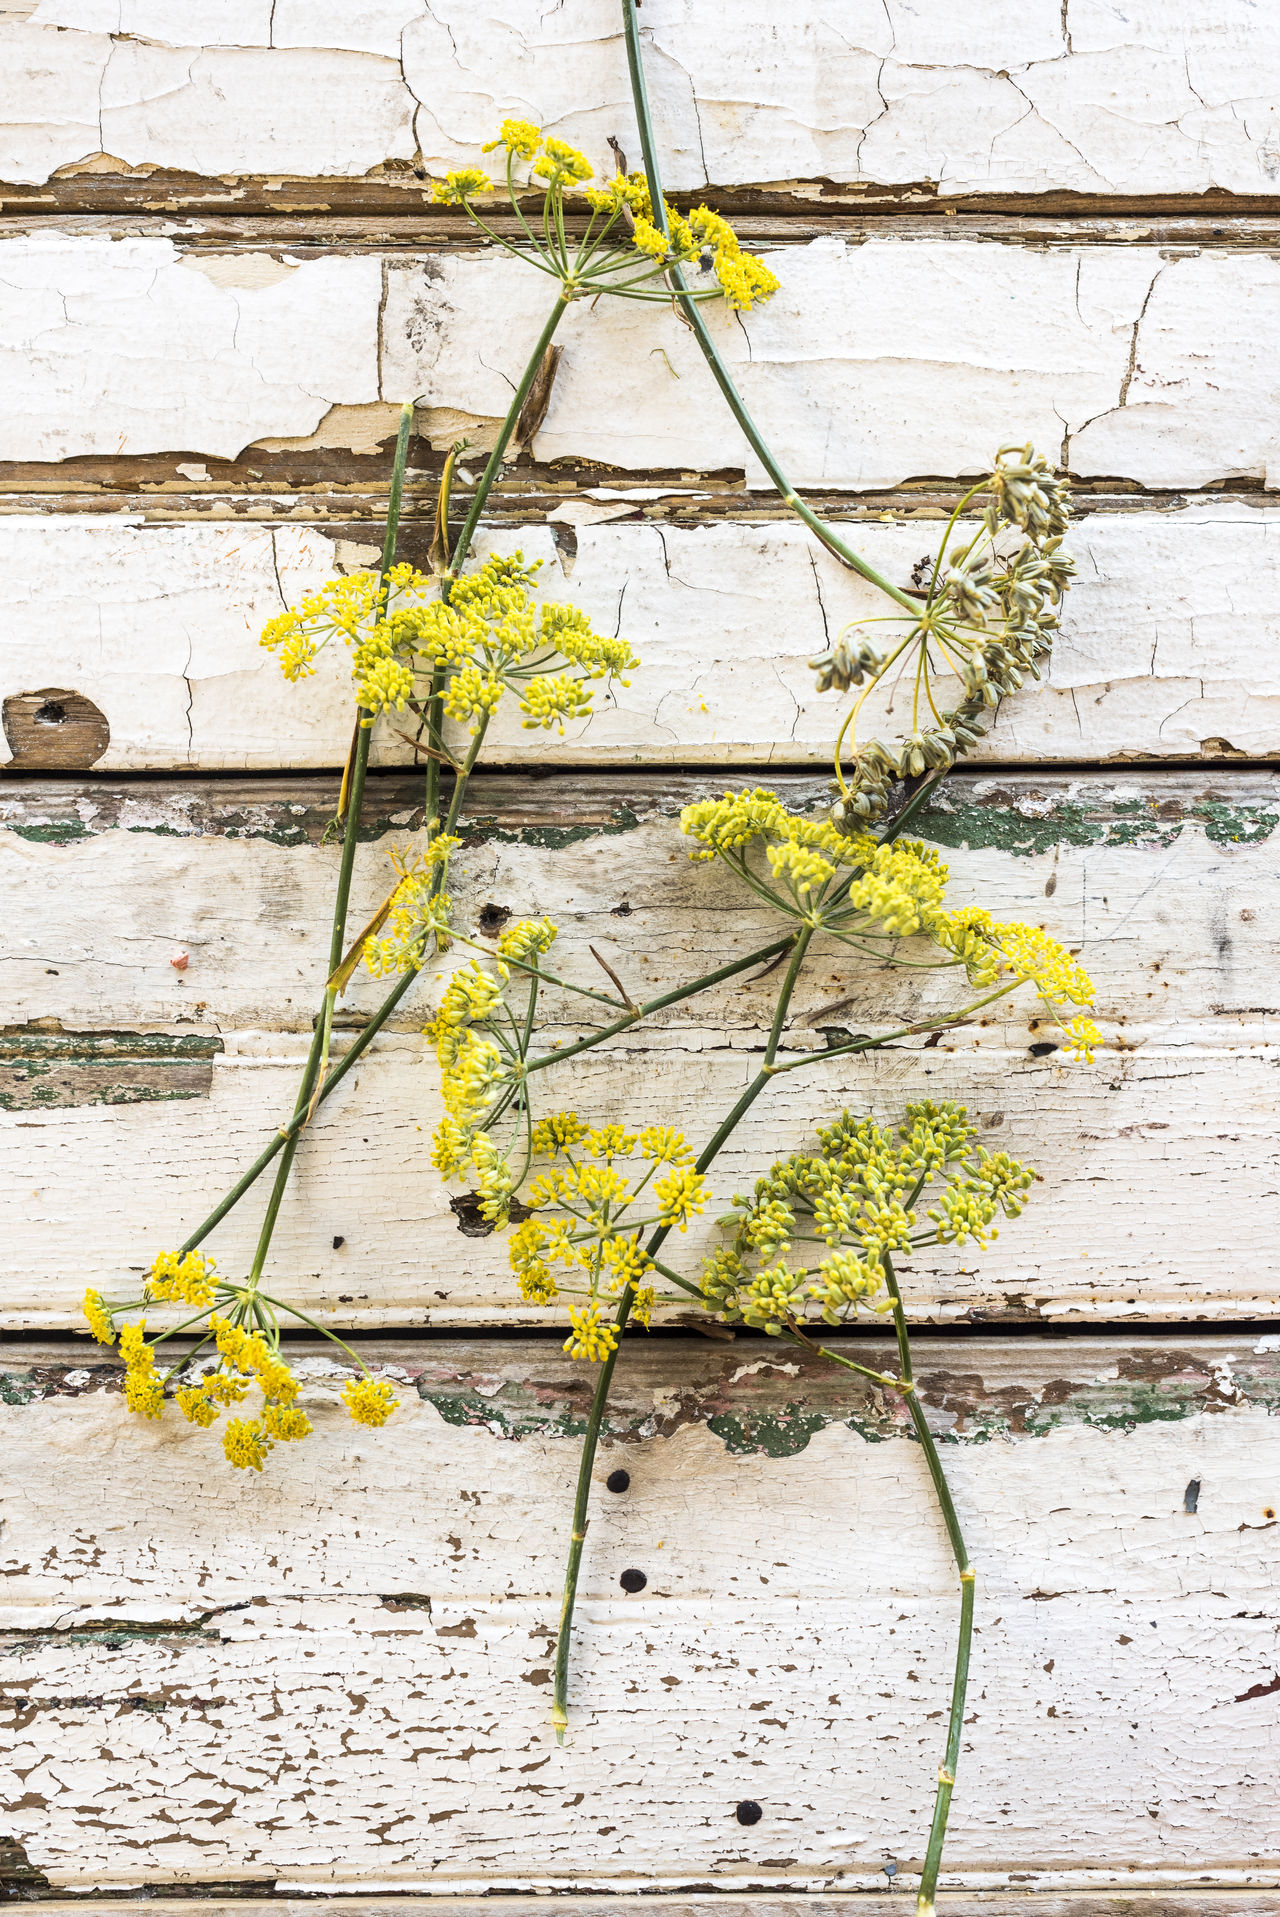 Close-up Day Fennel Fennel Flower Floral Flower Flowers Food Fragility Herbs Nature No People Outdoors Plant Texture Textured  Vegetable Vintage Weathered White Wood Yellow